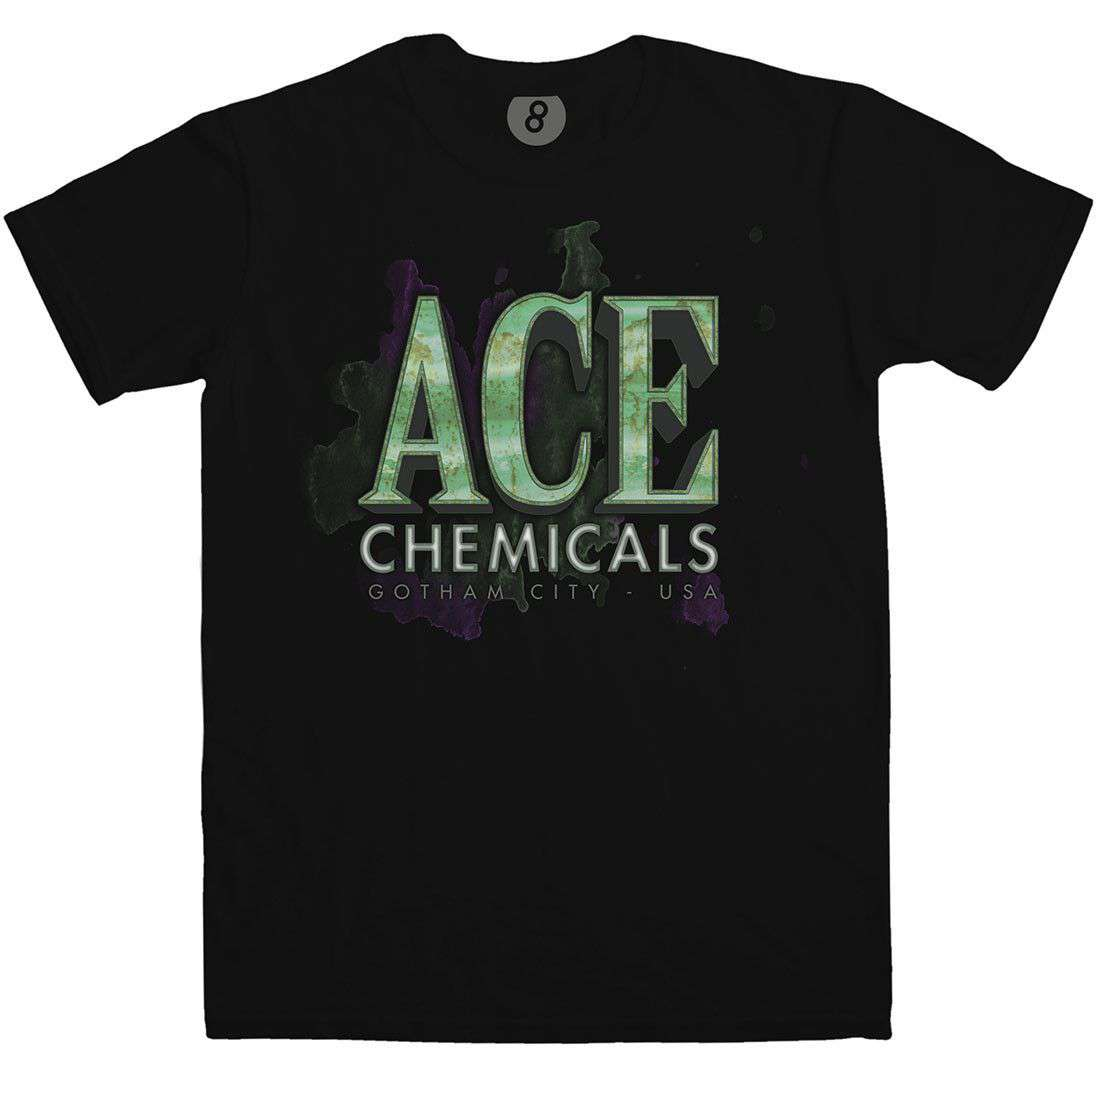 Inspired by Suicide Squad - Ace Chemicals T Shirt